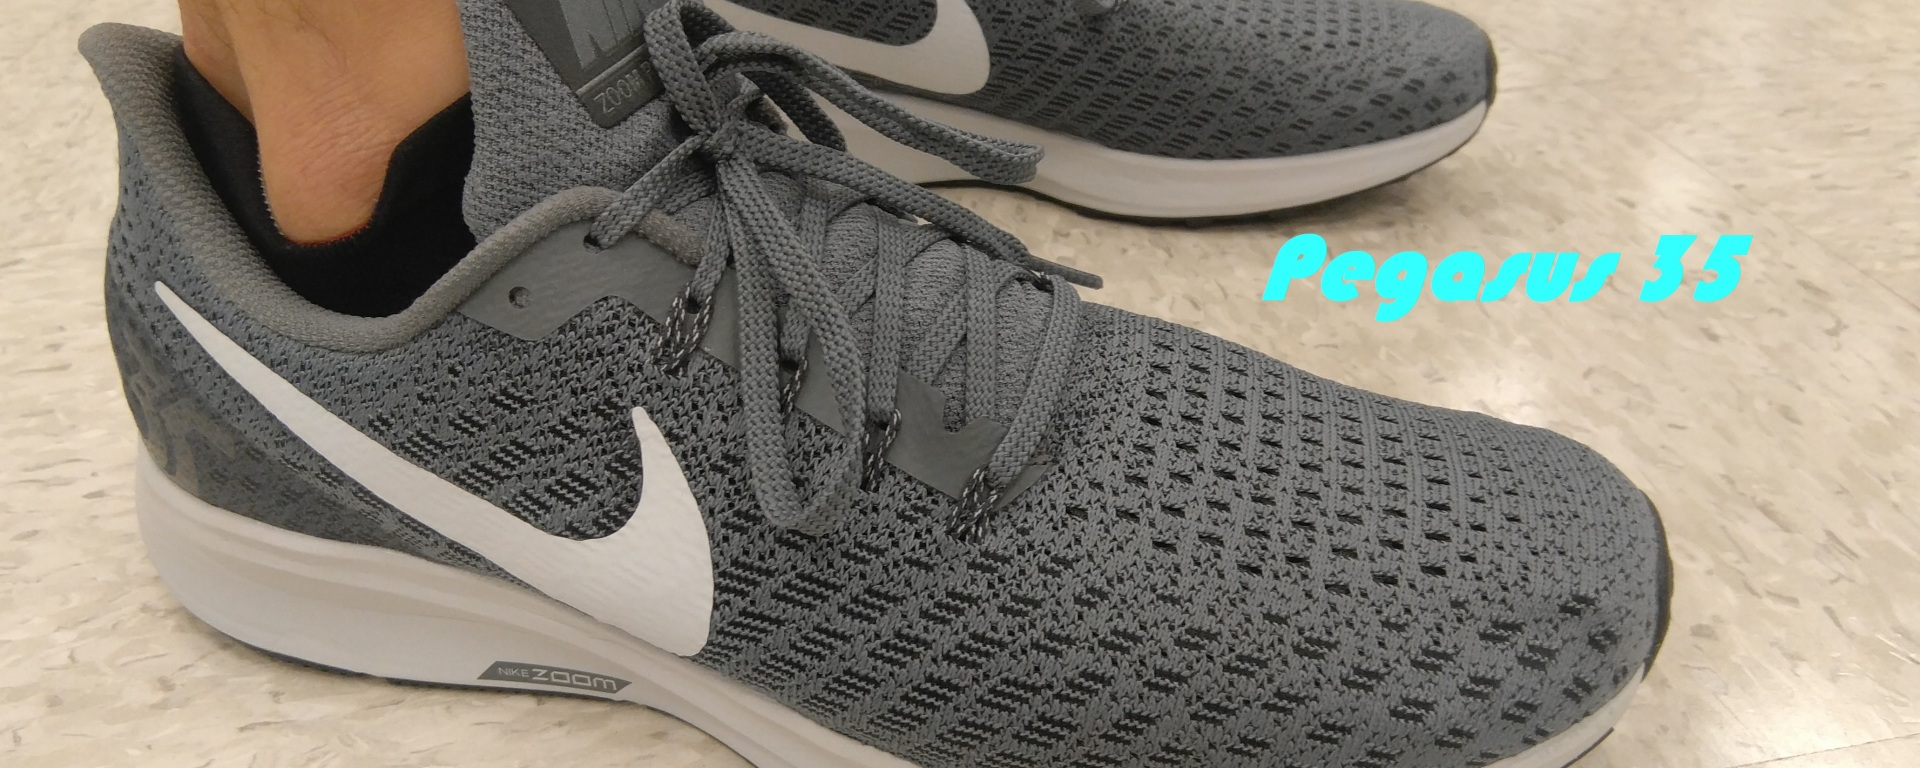 Review Nike Pegasus 35